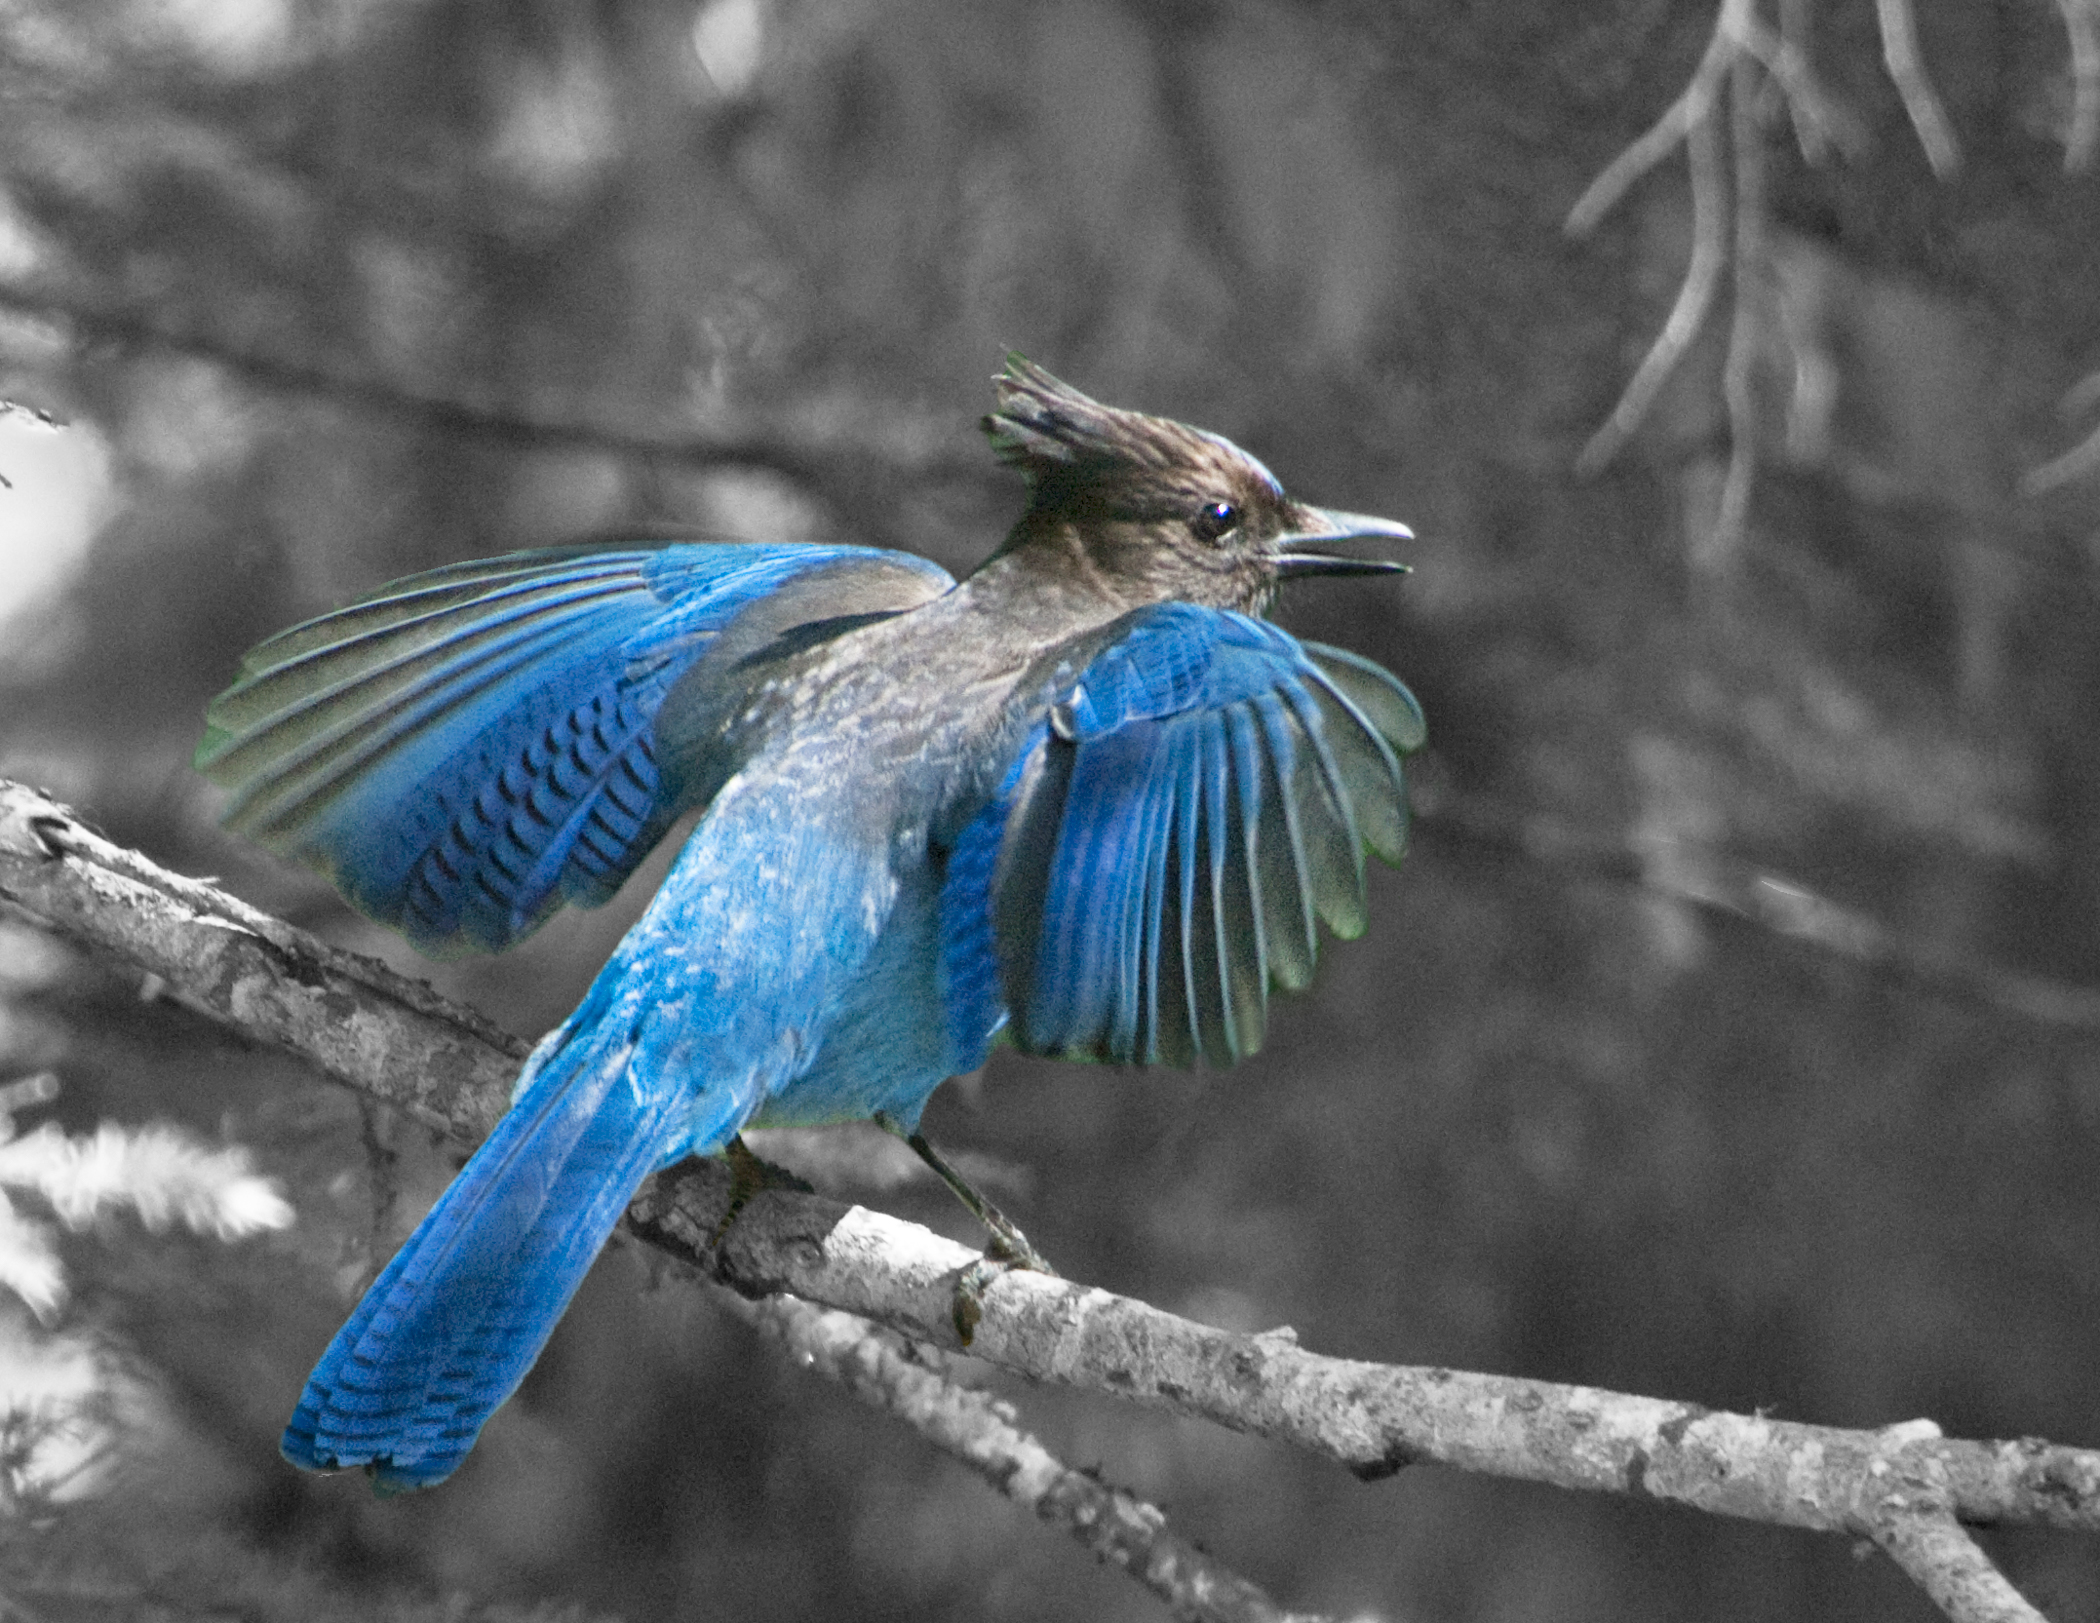 3rd place - Blue Jay - Phyllis Bankier